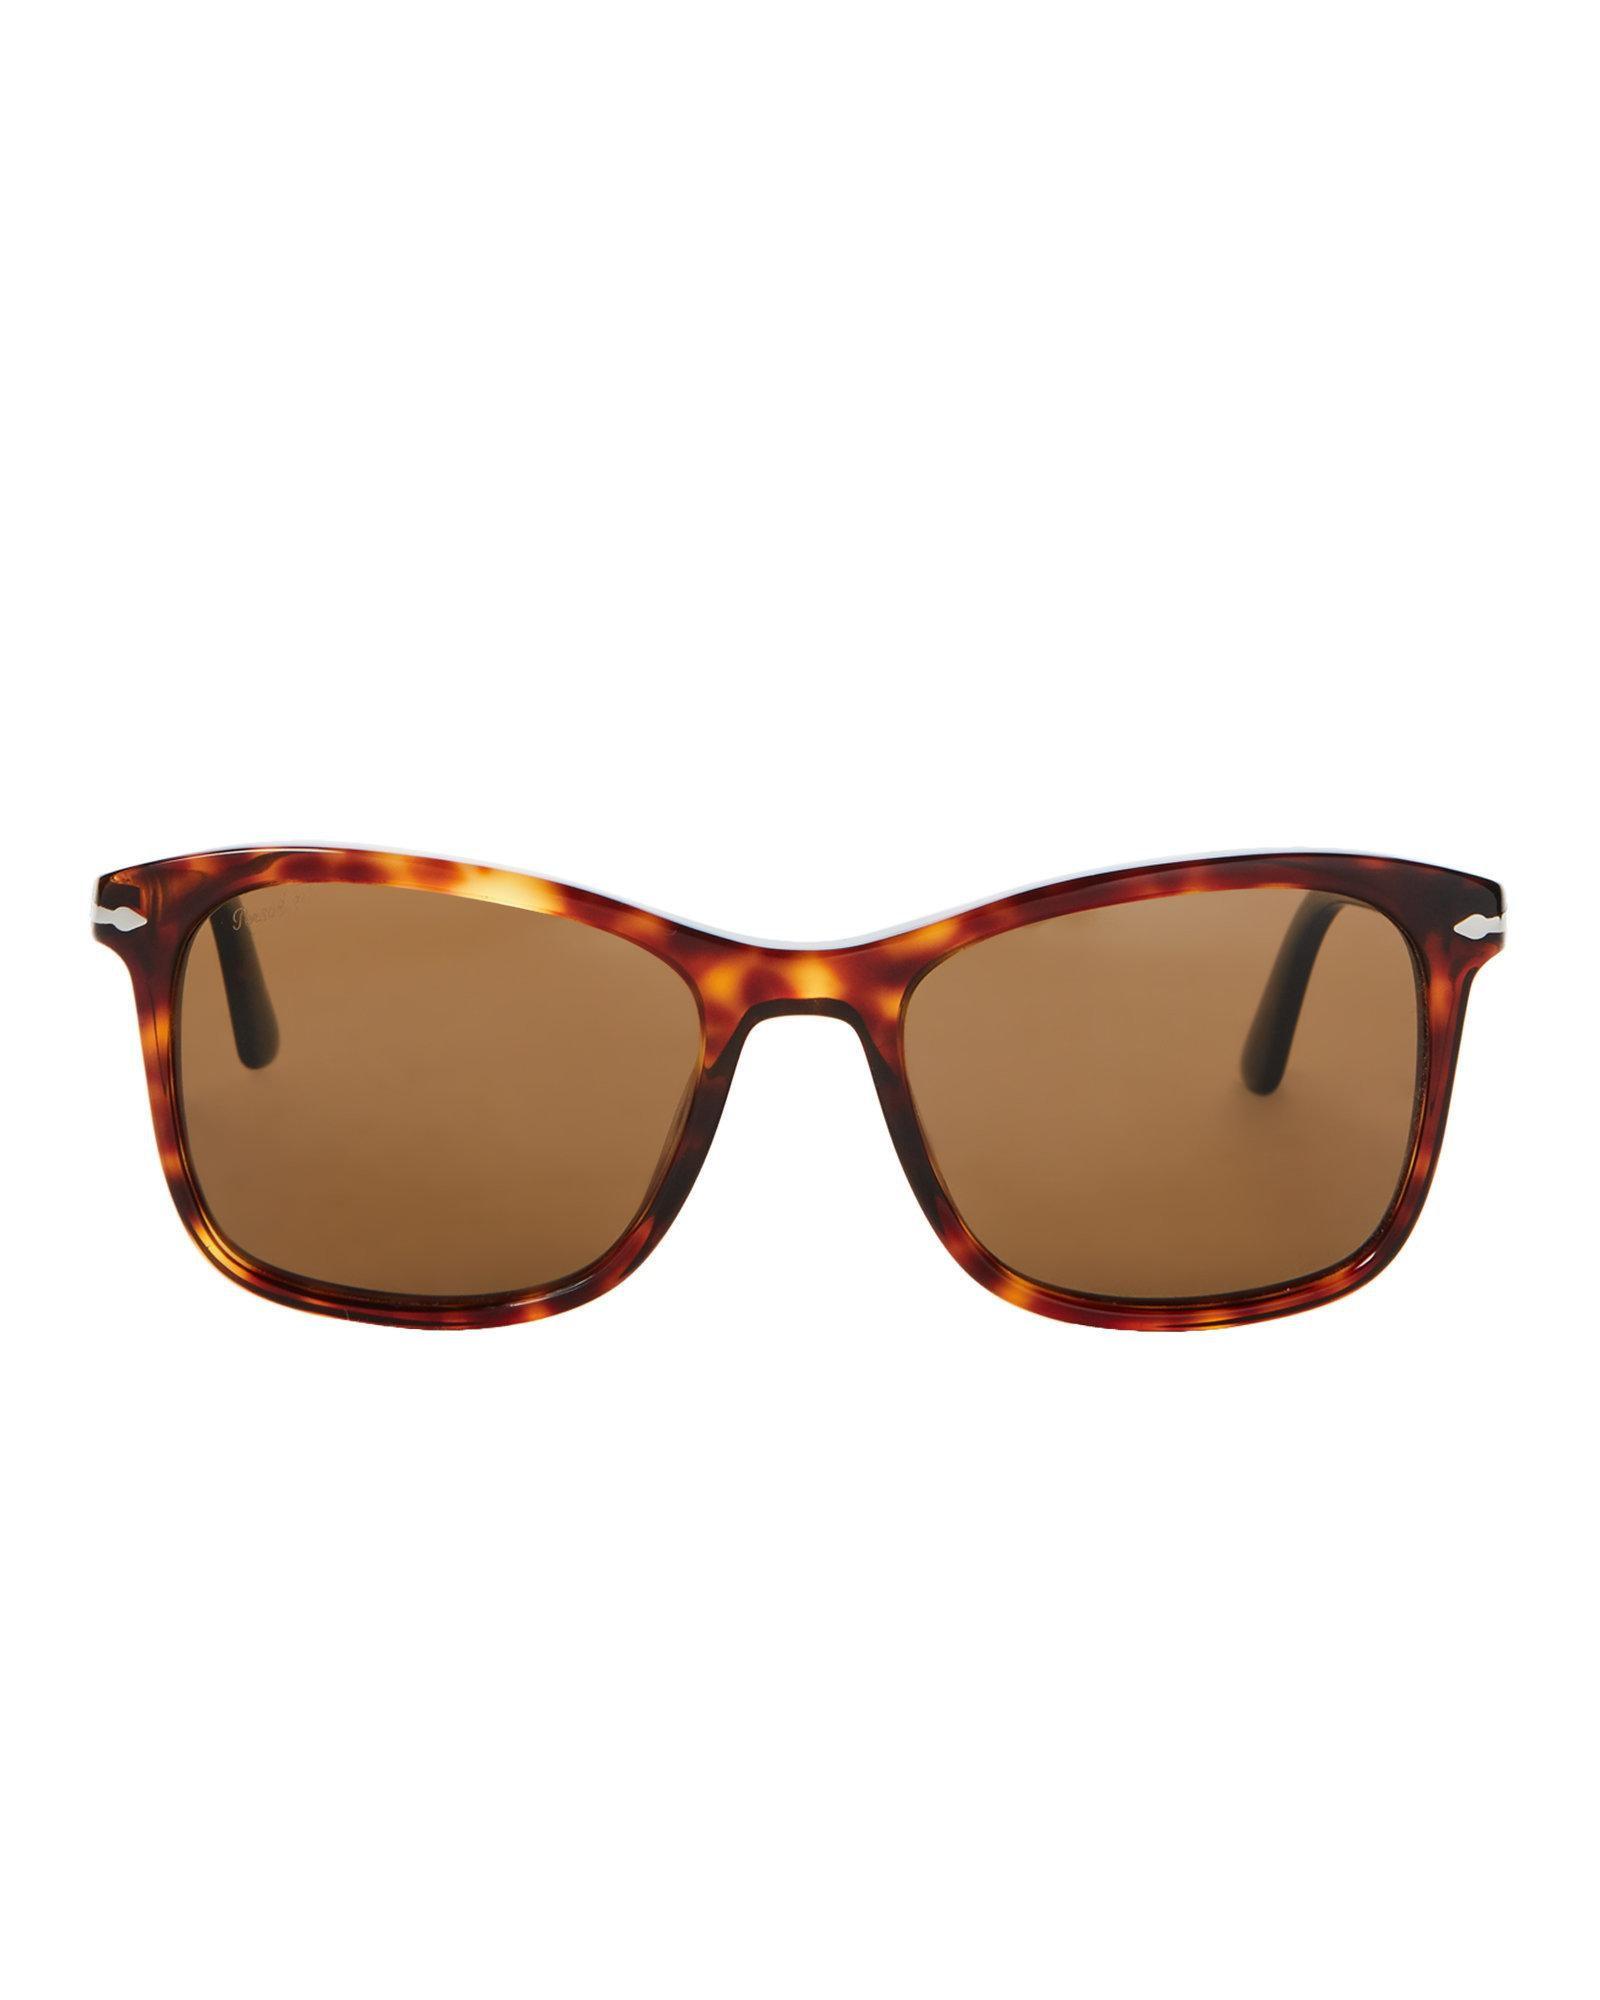 c8ac1271f0244 Persol Po3192s Brown   Tortoiseshell-look Square Polarized ...